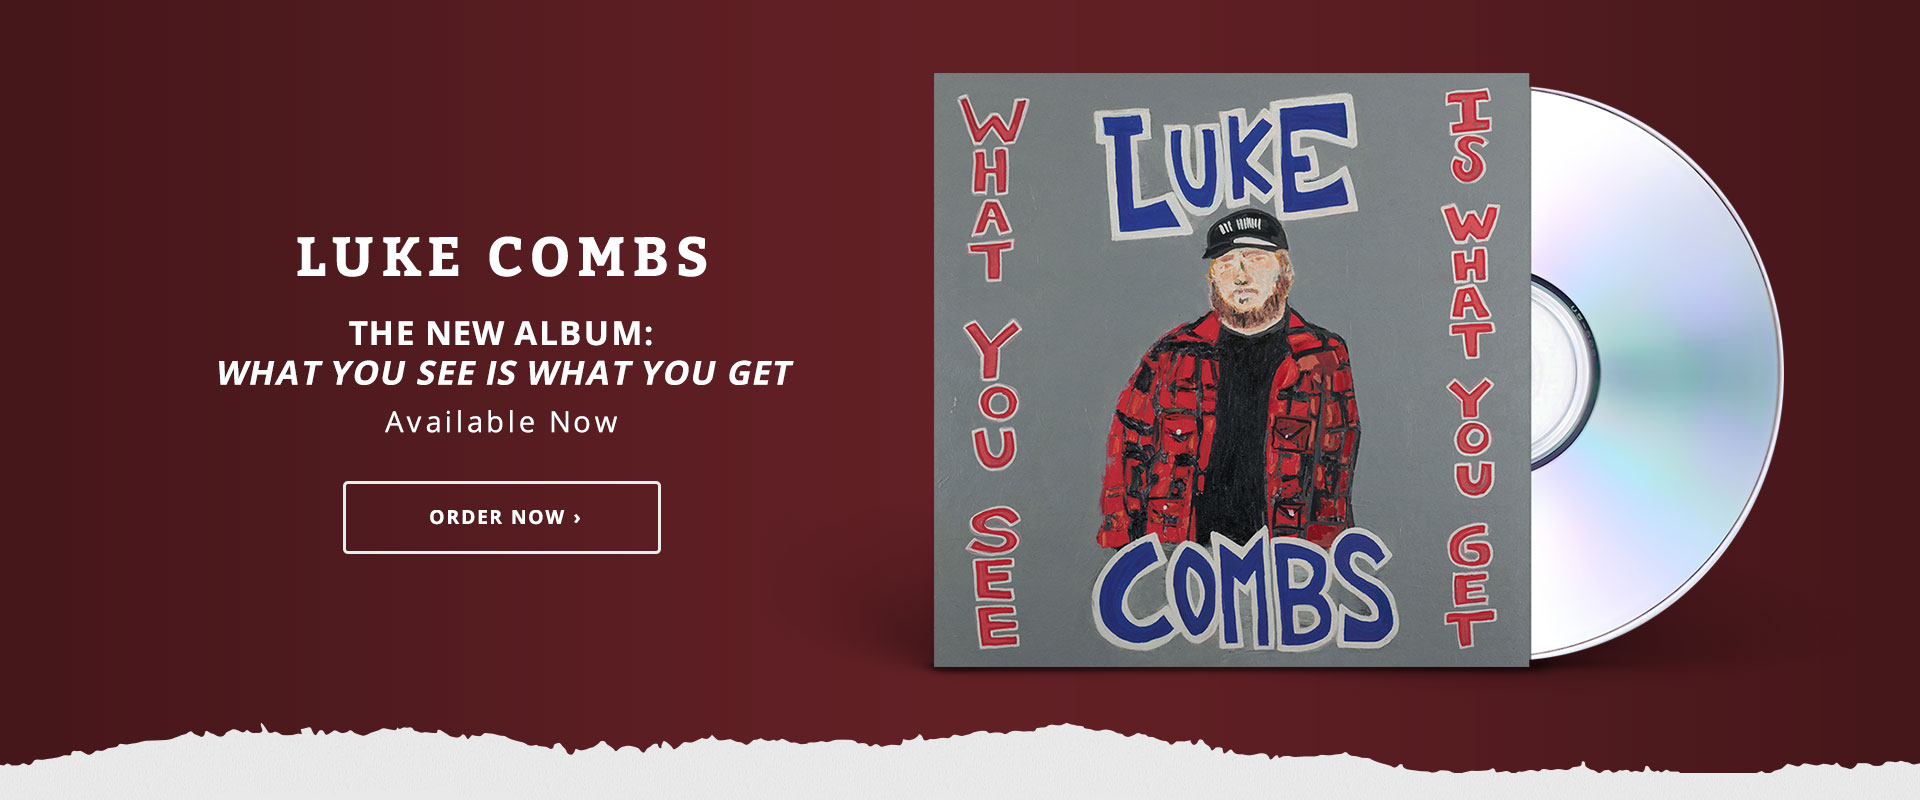 Luke Combs New Album What you see is what you get Order Now